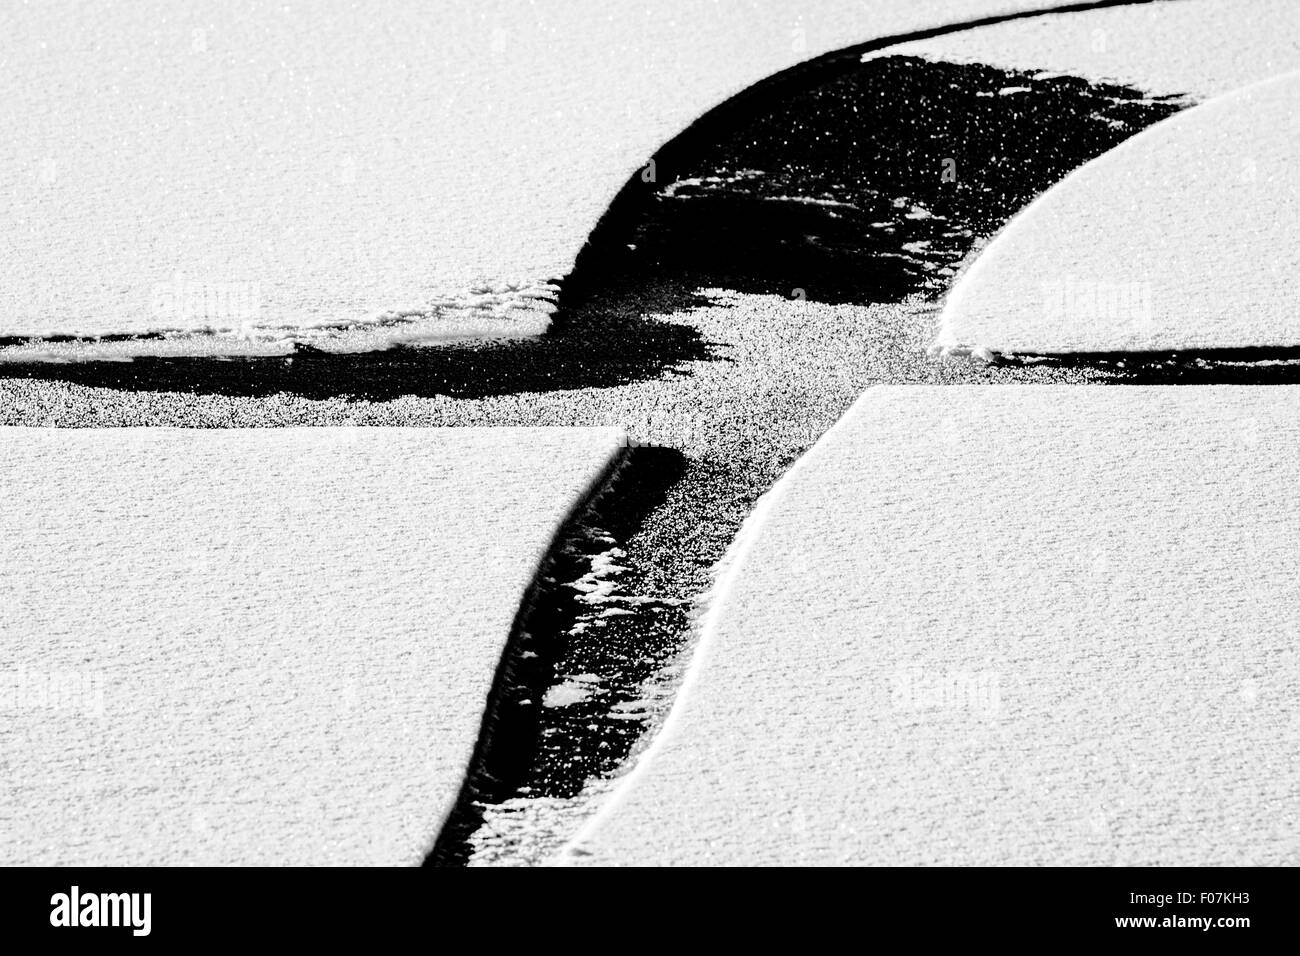 The Mark X on snow - Stock Image